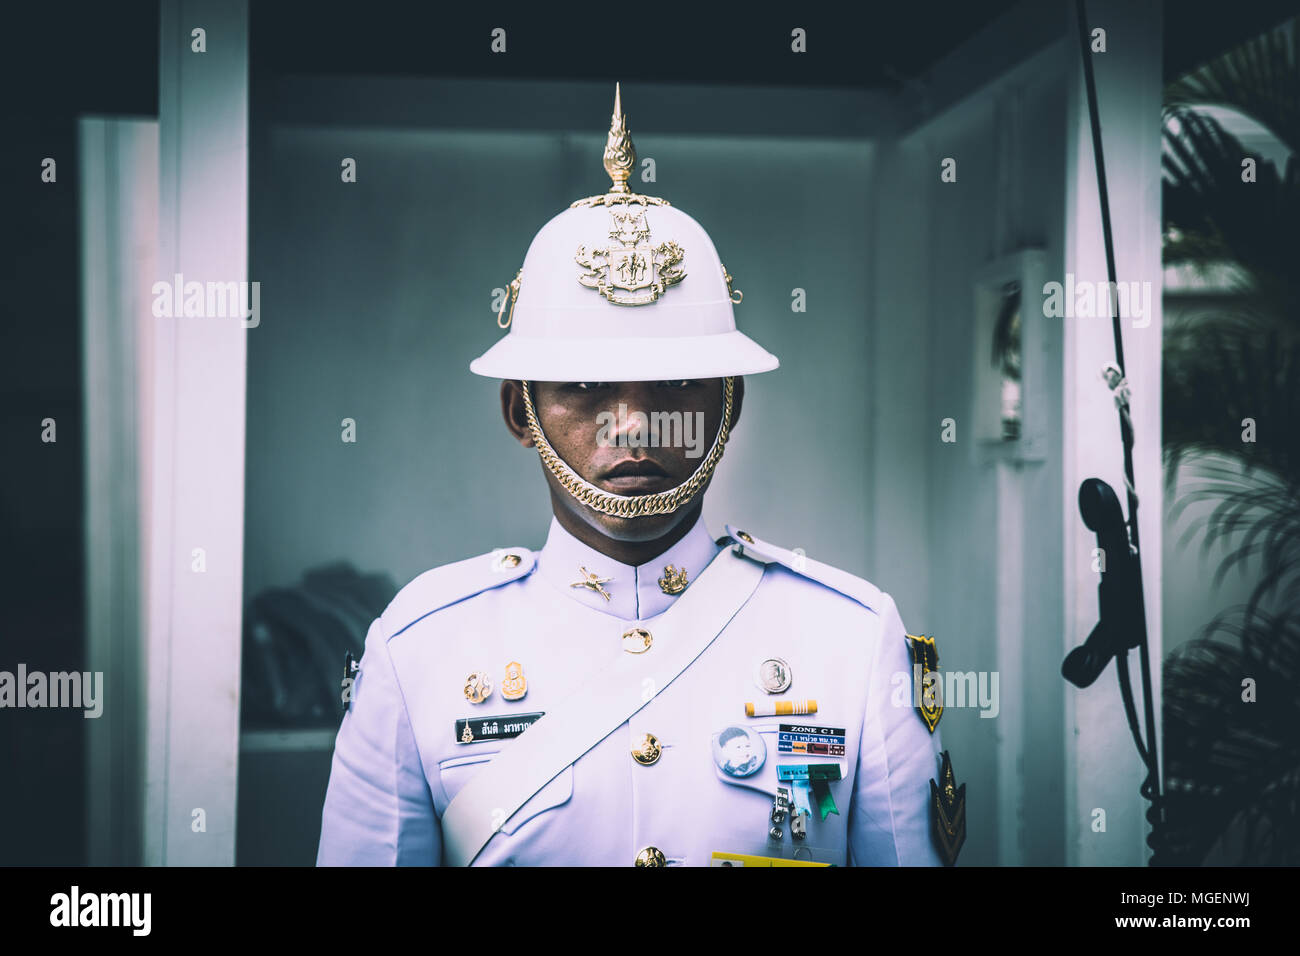 A guard with Asian traits dressed in white with a decorated helm controls impassive tourists outside the temple of Wat Pho in Bangkok Stock Photo